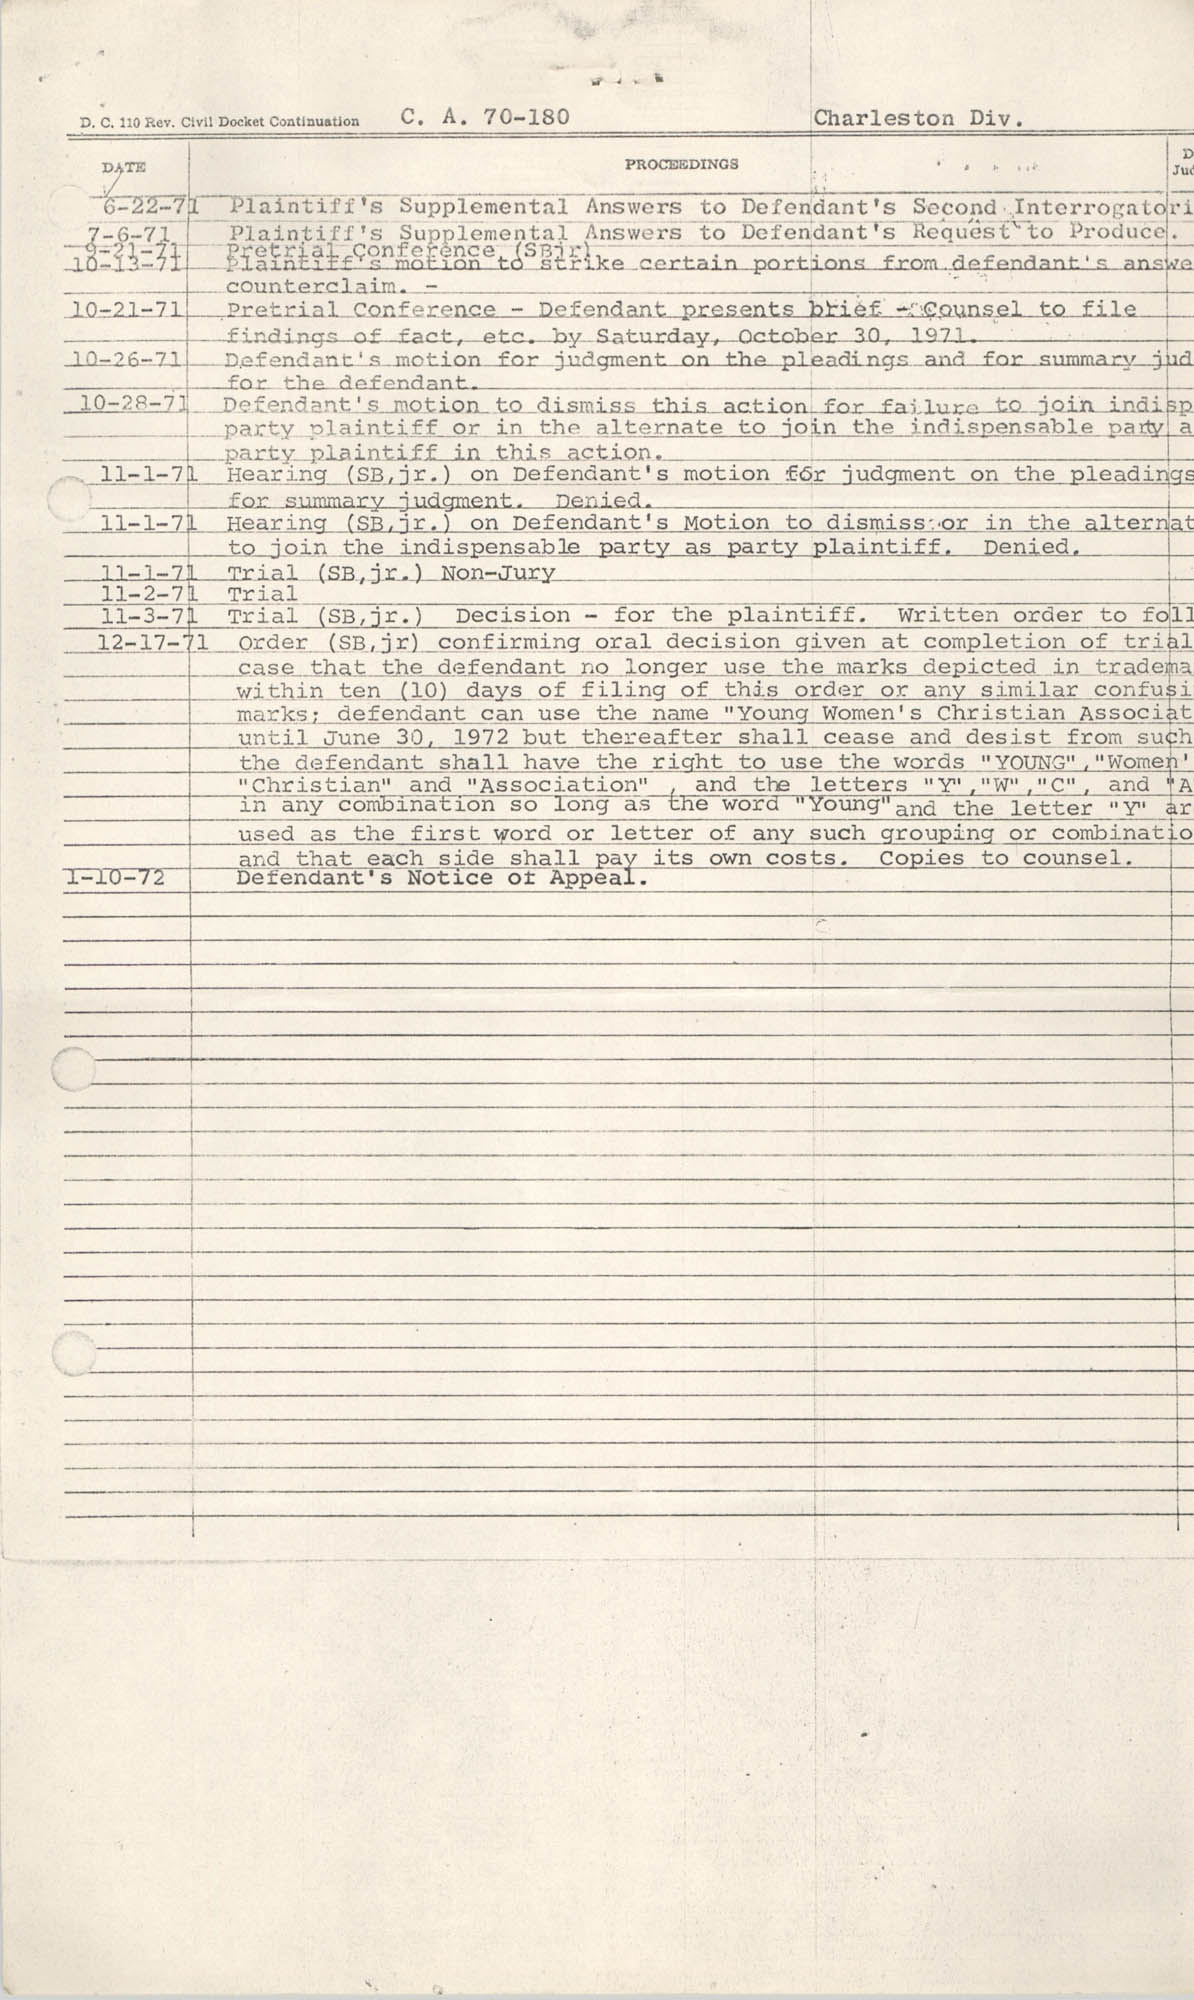 Index to Appeal Record, National Board of the Y.W.C.A. of U.S.A. vs. Y.W.C.A. of Charleston, S. C., Civil Action No. 70-180, Proceedings List, Page 2